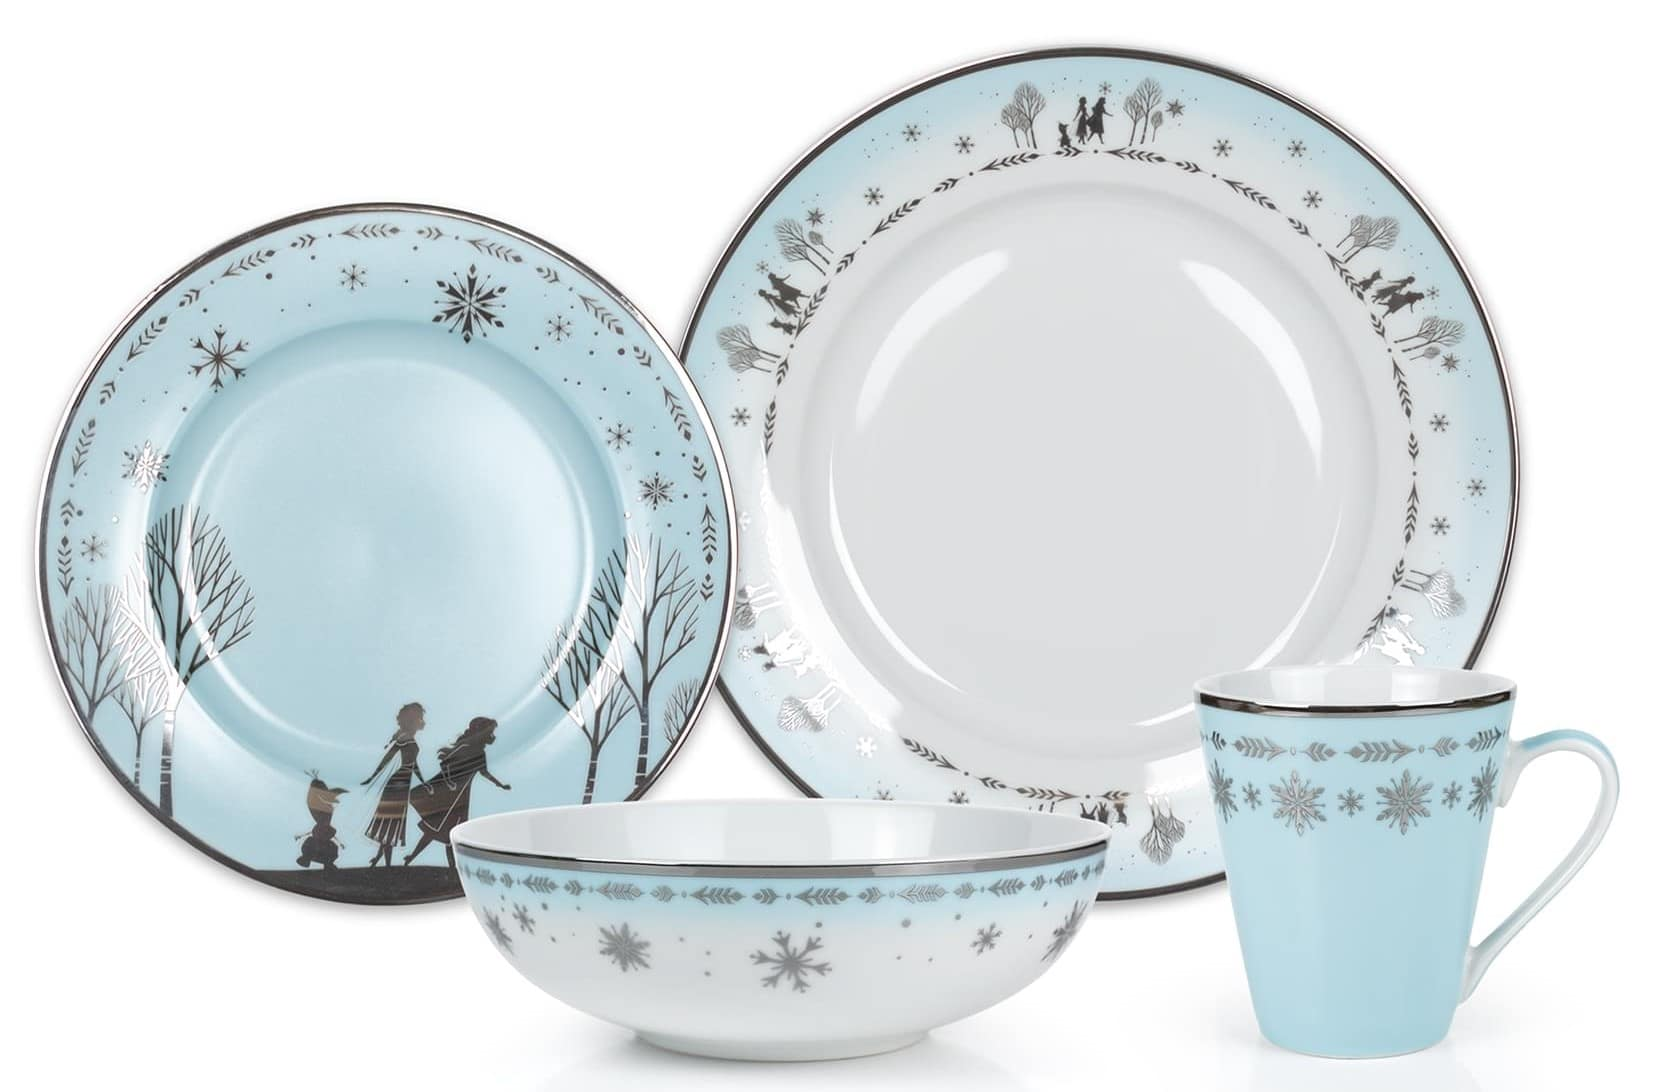 Elegant Disney Princess dinnerware collection features Frozen and Mulan 15